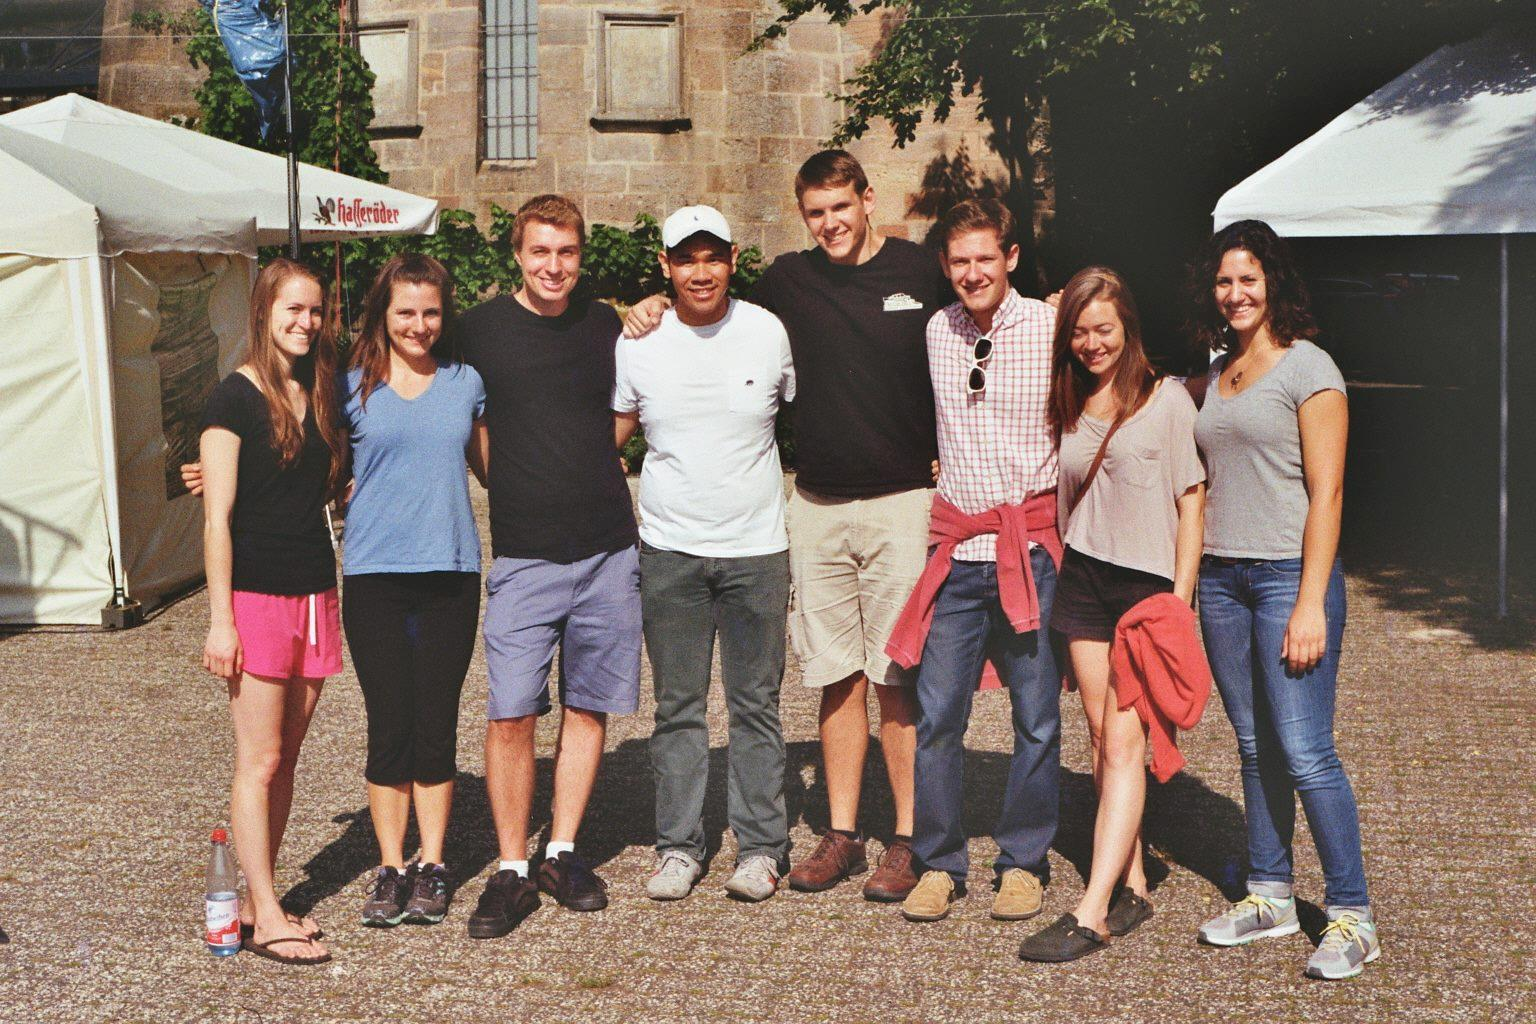 2013 Germany Research Fulbright recipient Julia Mazzarella in Marburg, Germany